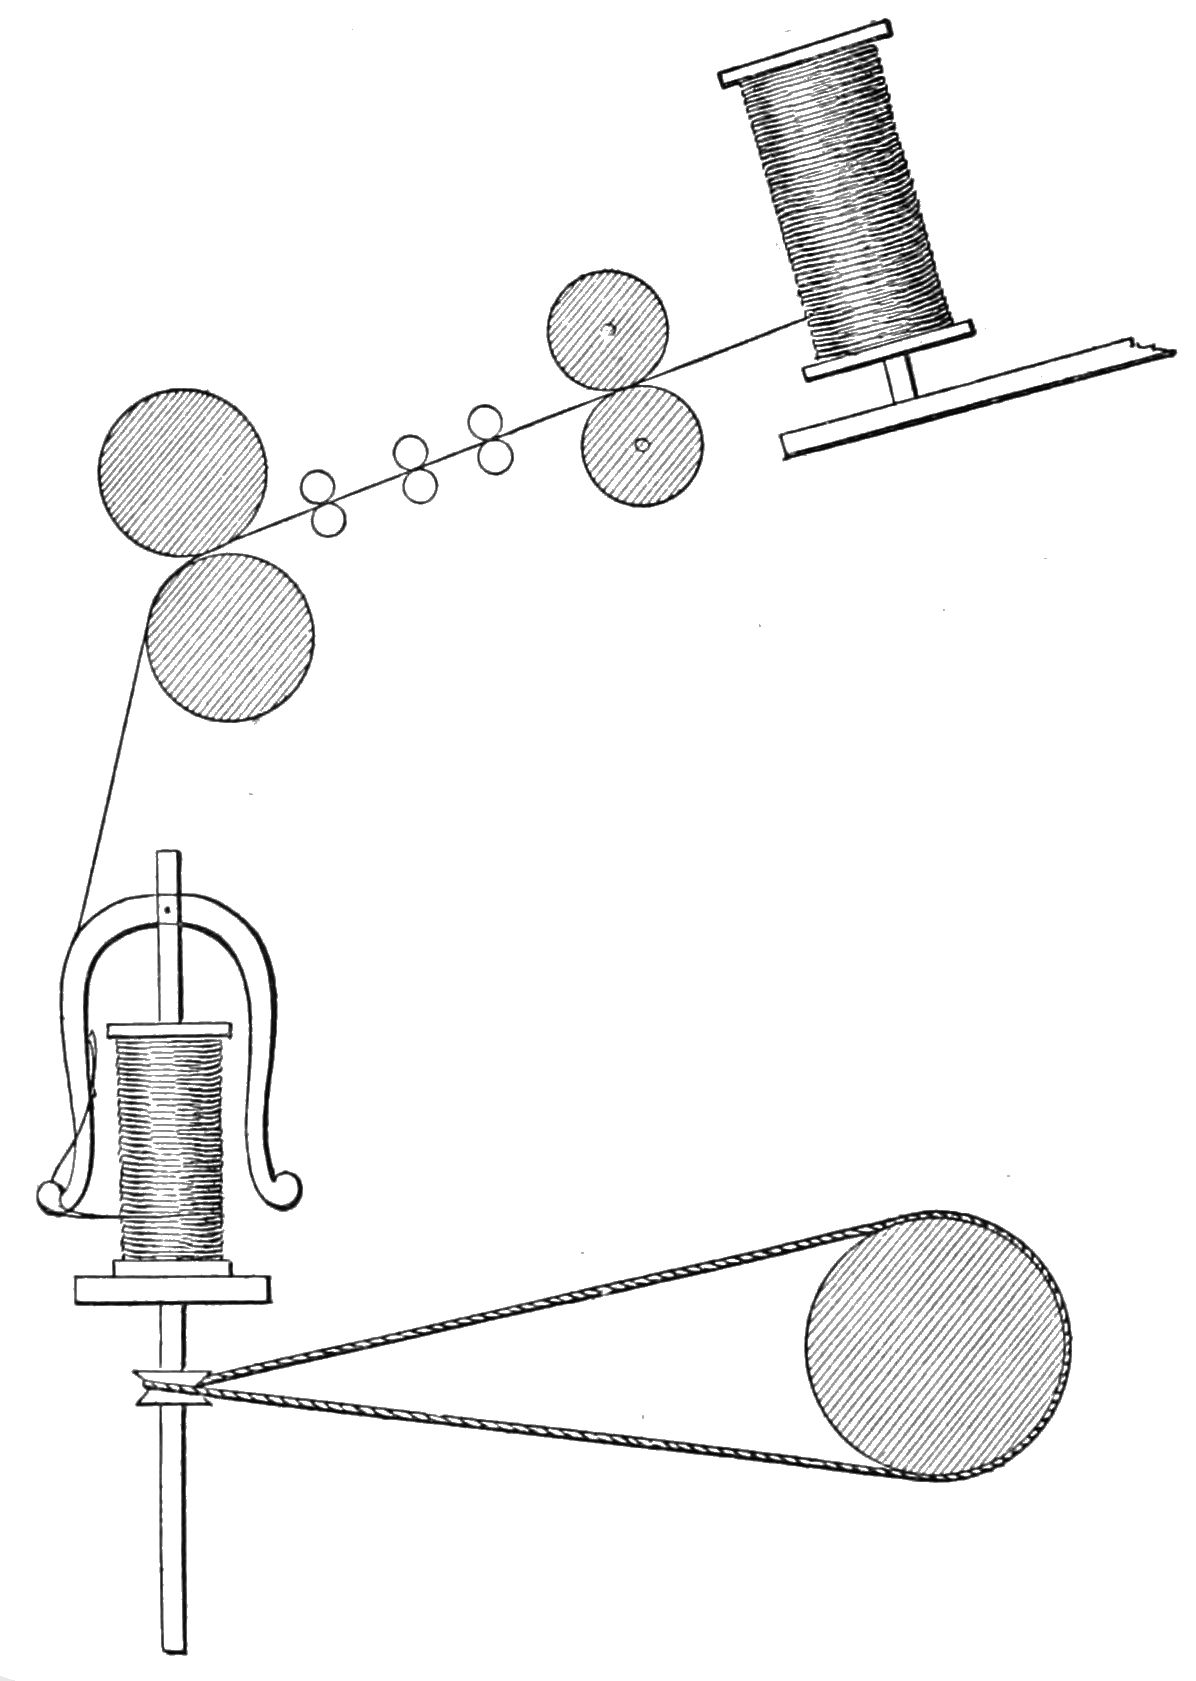 PSM V39 D316 Flier spindle.jpg